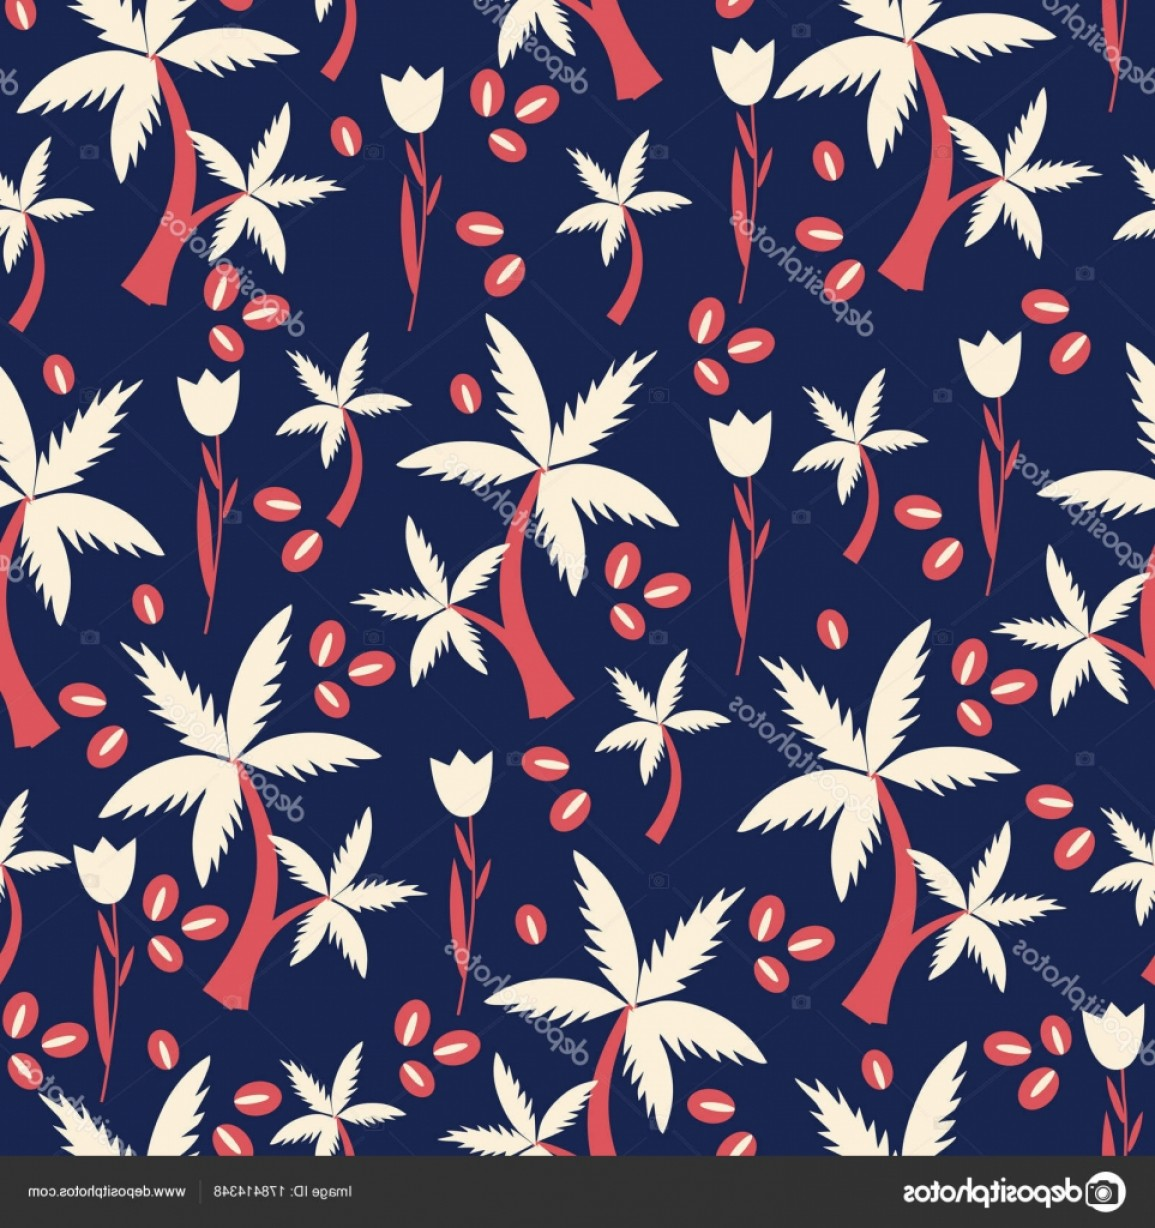 Seed Flower Vectors: Stock Illustration Seamless Floral Pattern Cartoon Vector